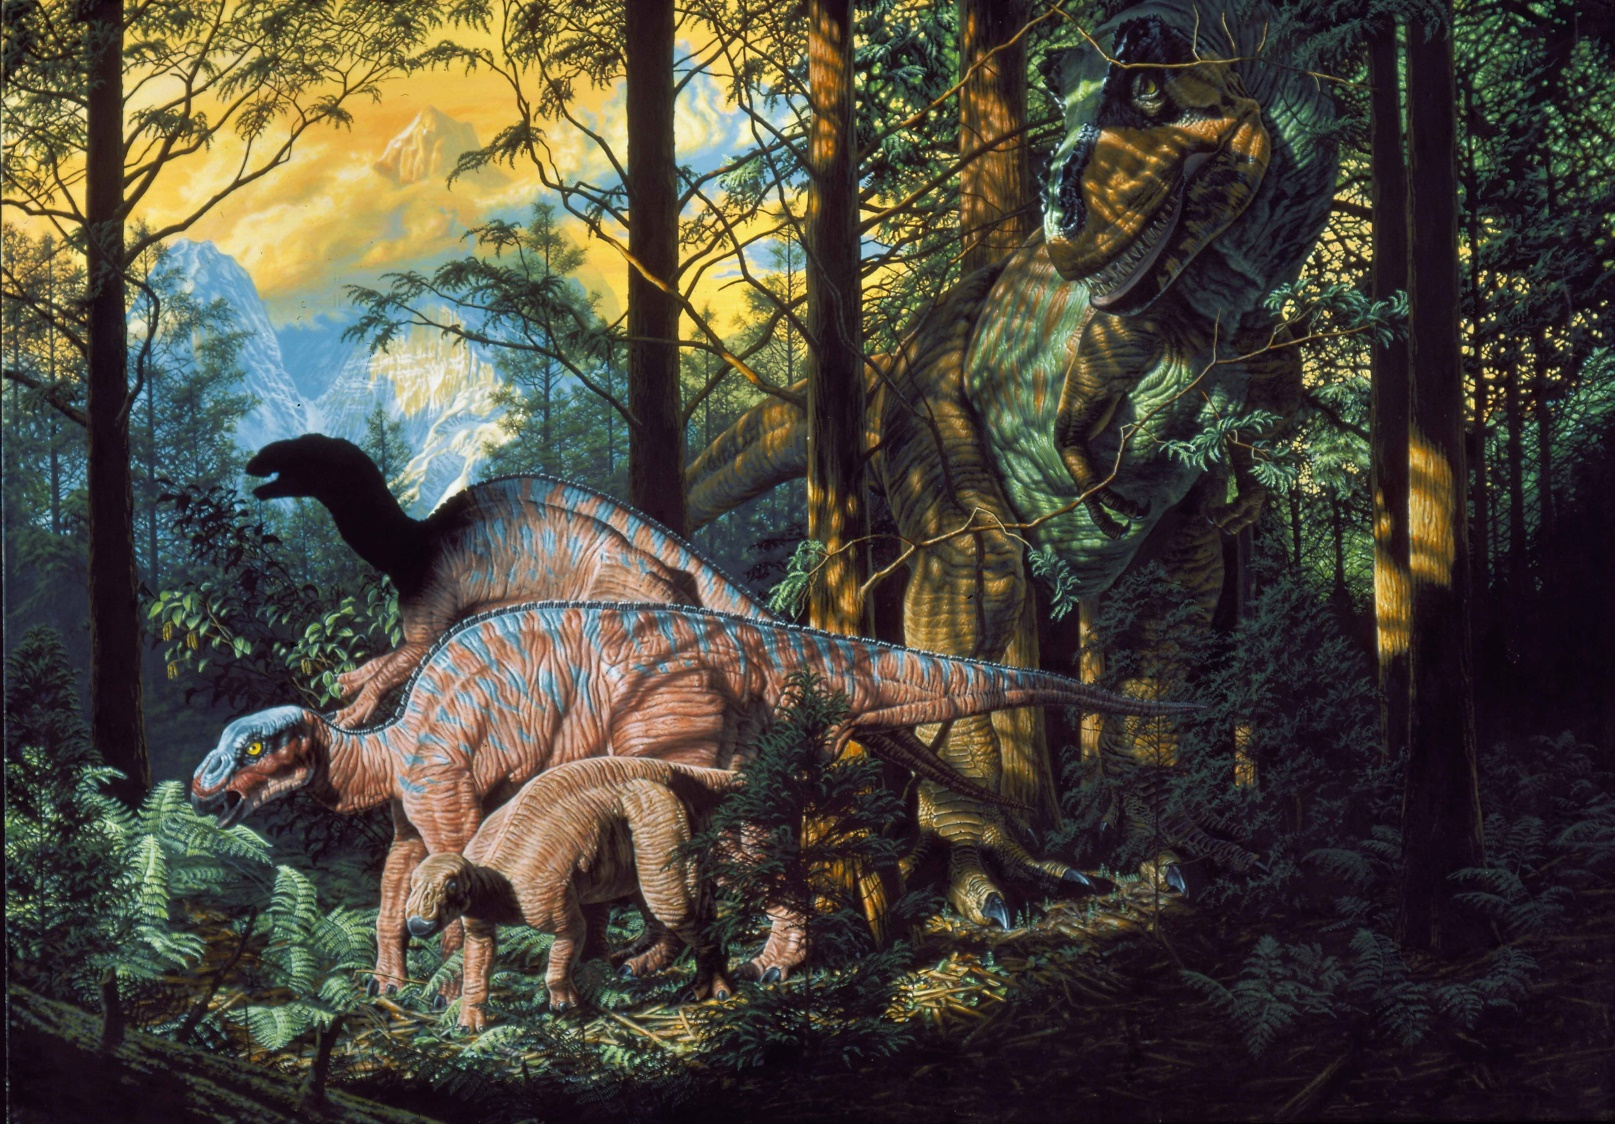 Edmontosaurs and tyrannosaur. This painting, also done for the January, 1993 issue of  National Geographic Magazine,  depicts hadrosaurs (duckbills) and a stealthy tyrannosaur found on Alaska's North Slope, which was even further north at this time in the late Cretaceous Period than it is today. These dinosaurs were either adapted to the cold and dark, or migrated long distances as their relatives, the birds, do today.  $80,000